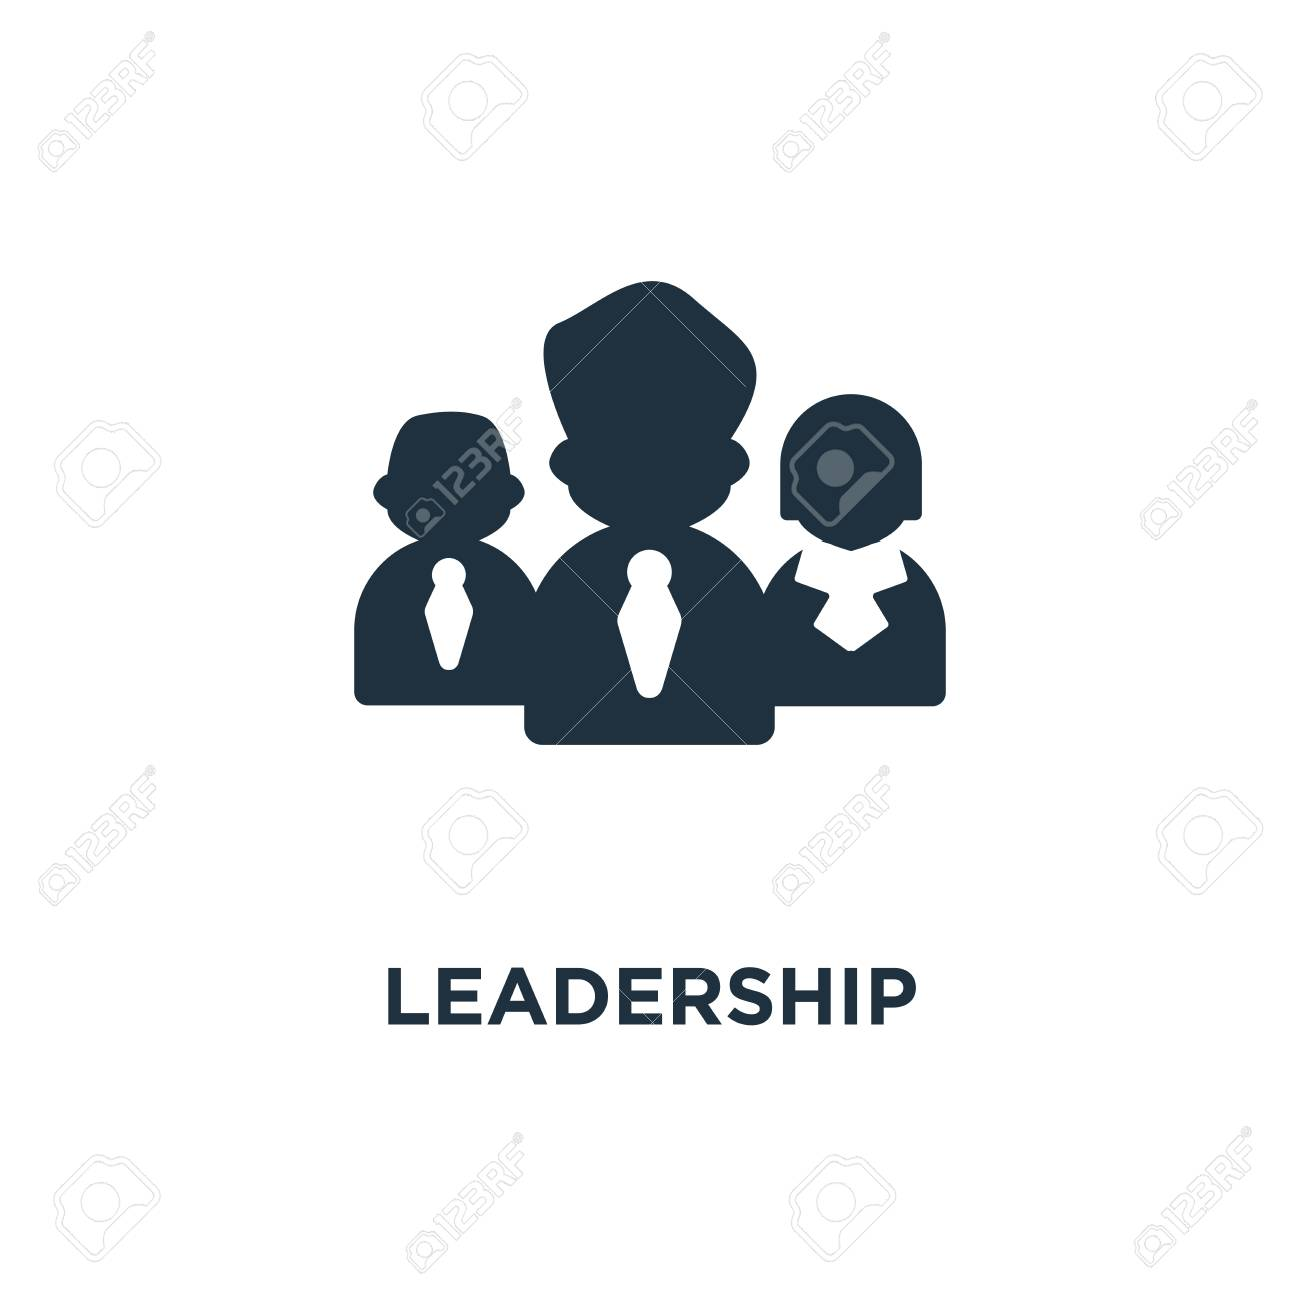 Leadership Icon Black Filled Vector Illustration Leadership Royalty Free Cliparts Vectors And Stock Illustration Image 112694446